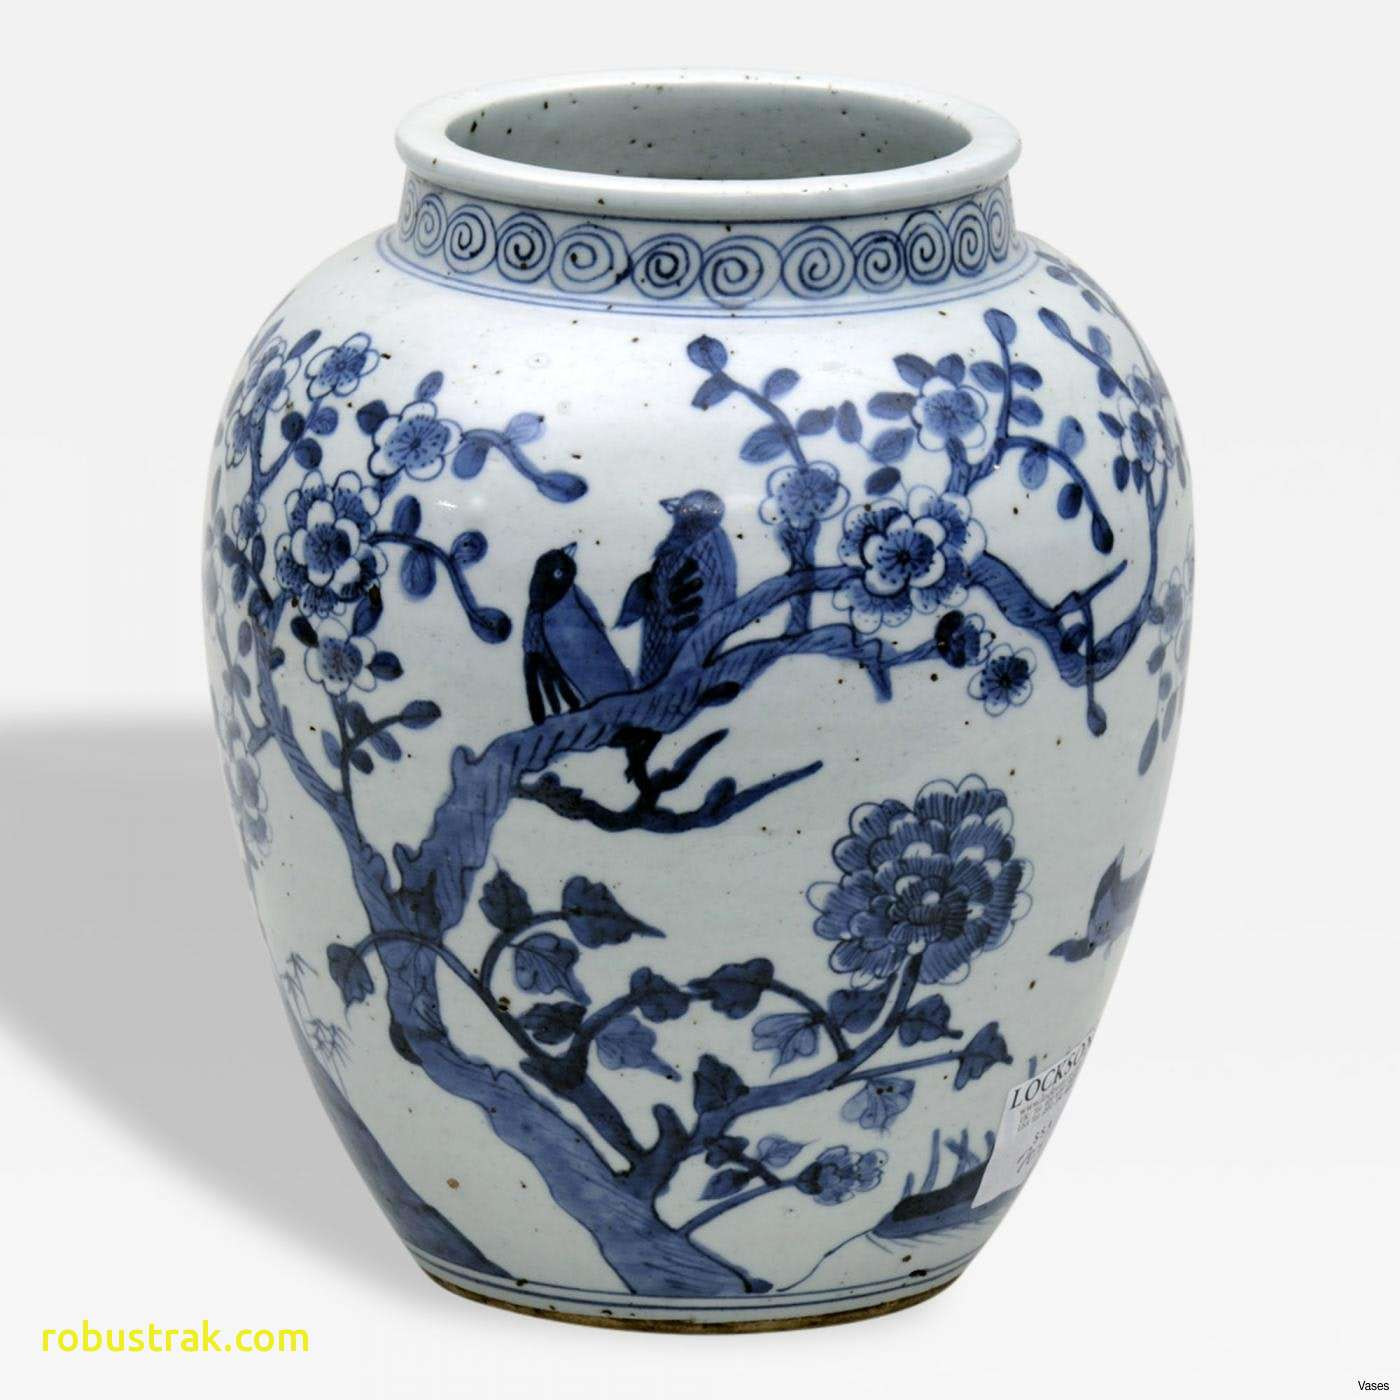 antique porcelain vases of luxury blue and white porcelain vase home design ideas with porcelain trumpet chinese shunzhi blue and white vase 1644 1661 h vases listings decorative arts objects